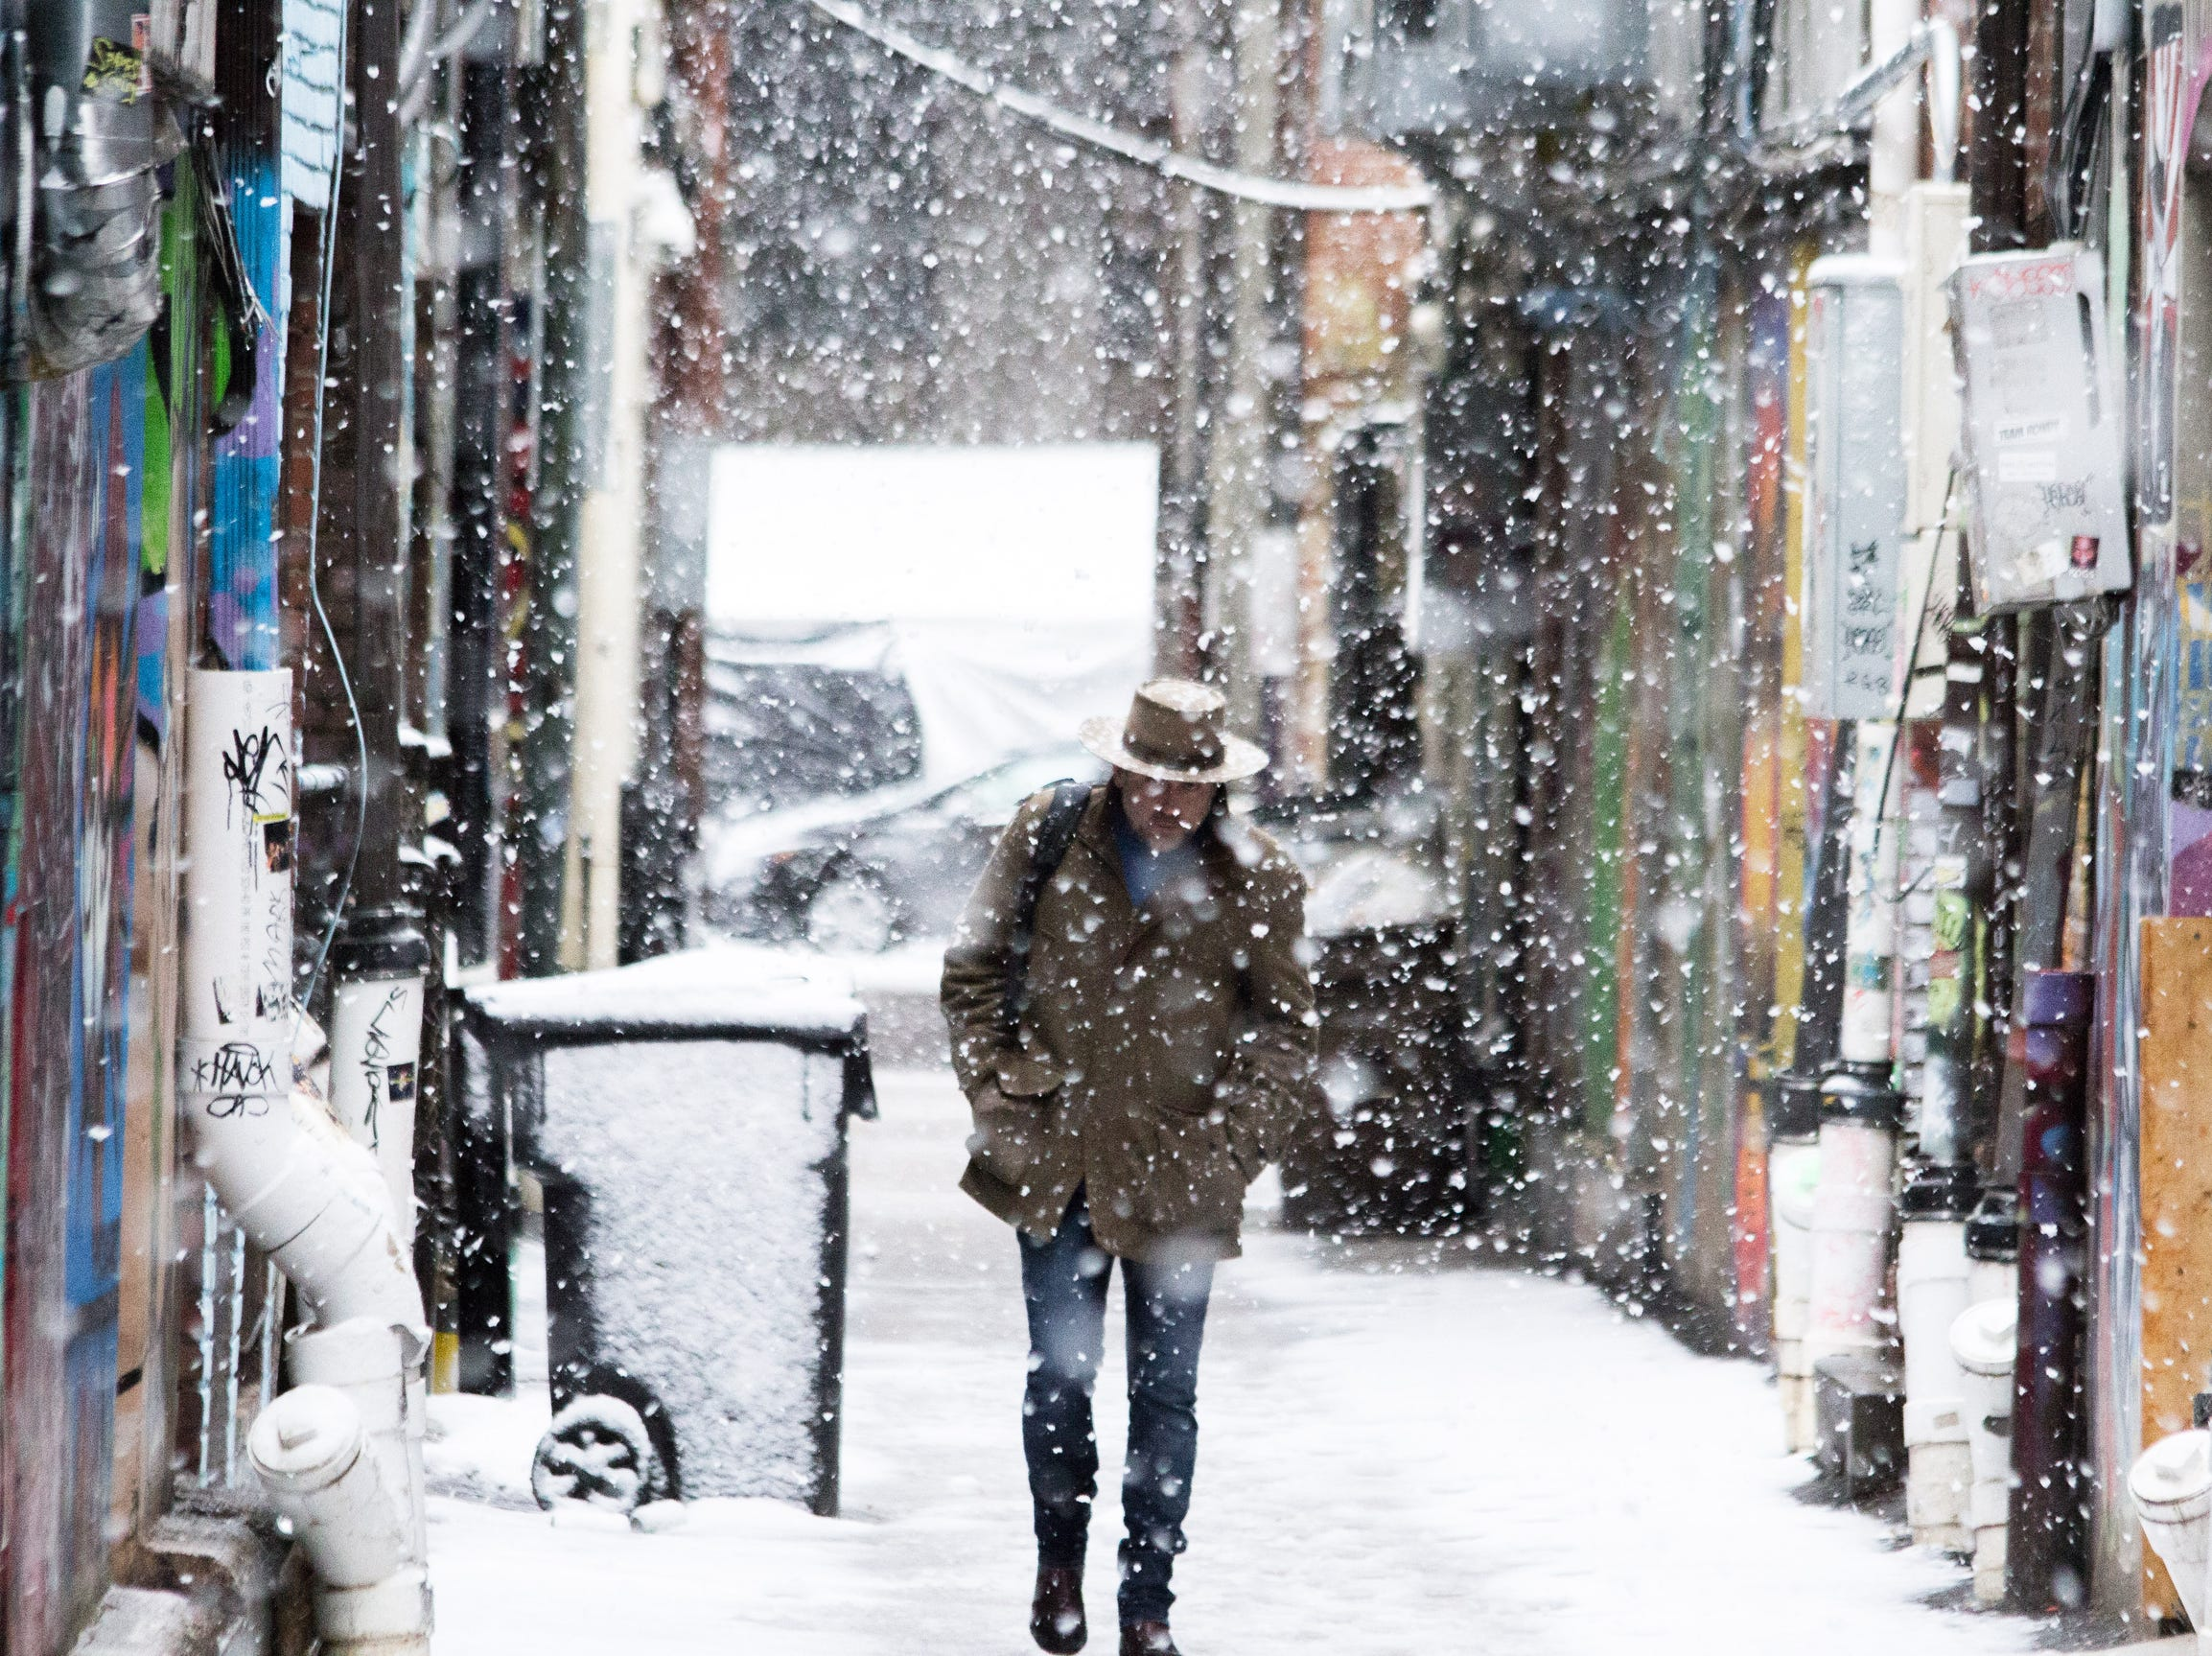 Snow flurries fall in an alley way in Downtown Knoxville in the season's first snow fall, Sunday.